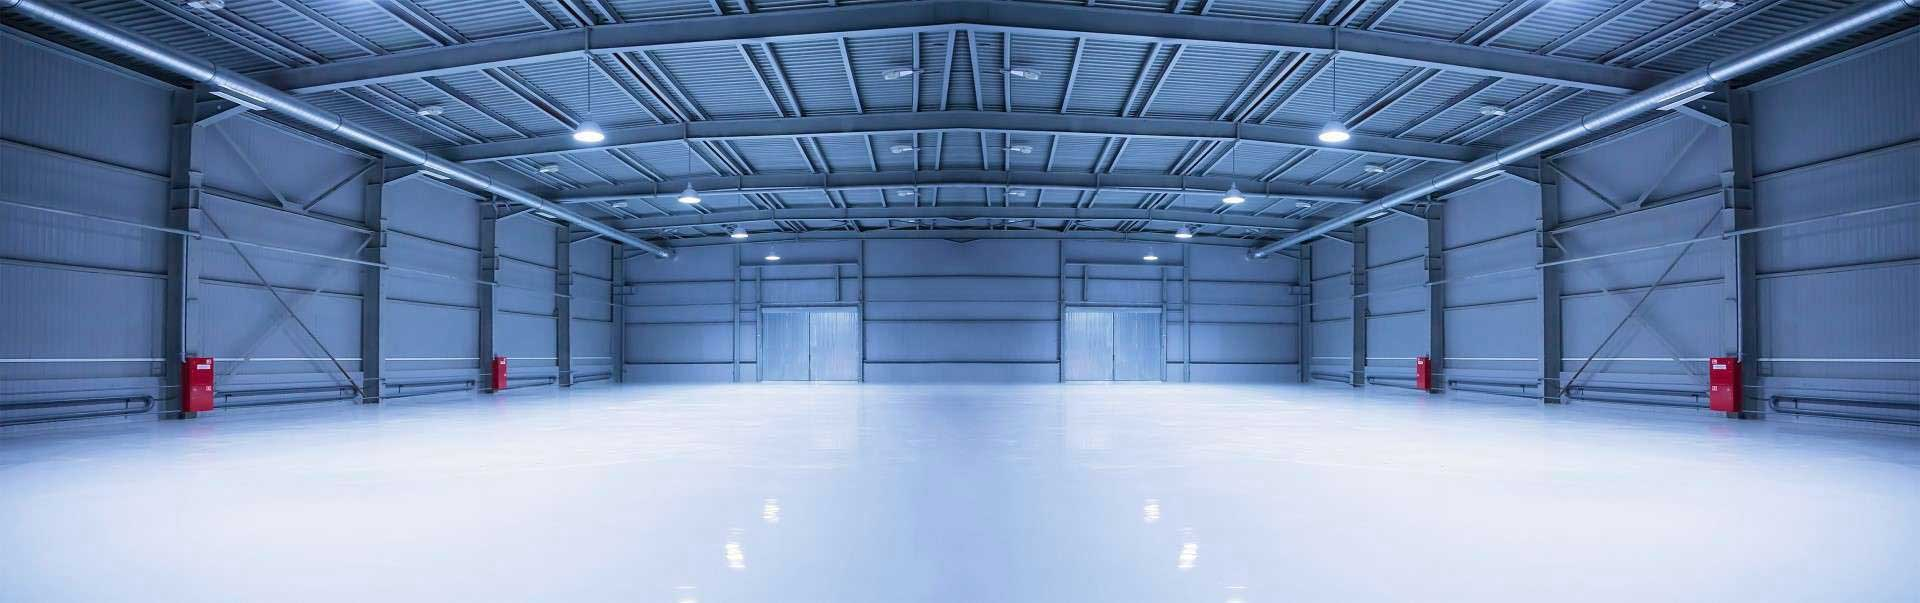 Red Iron Commercial Steel Buildings